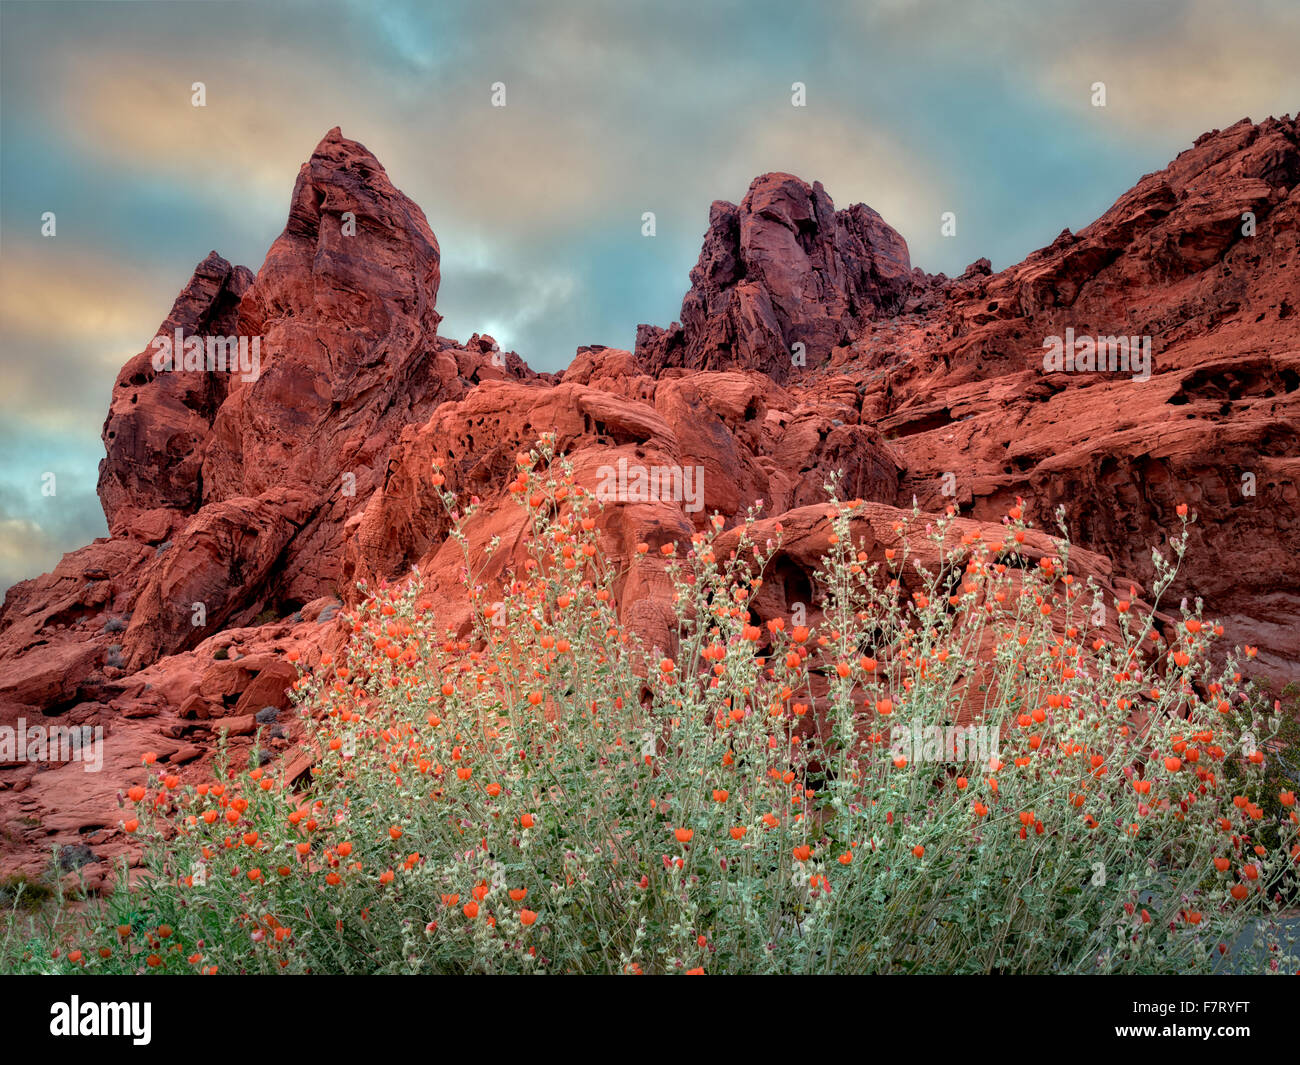 Globe Mallow and rock formation in Valley of Fire State Park, Nevada - Stock Image